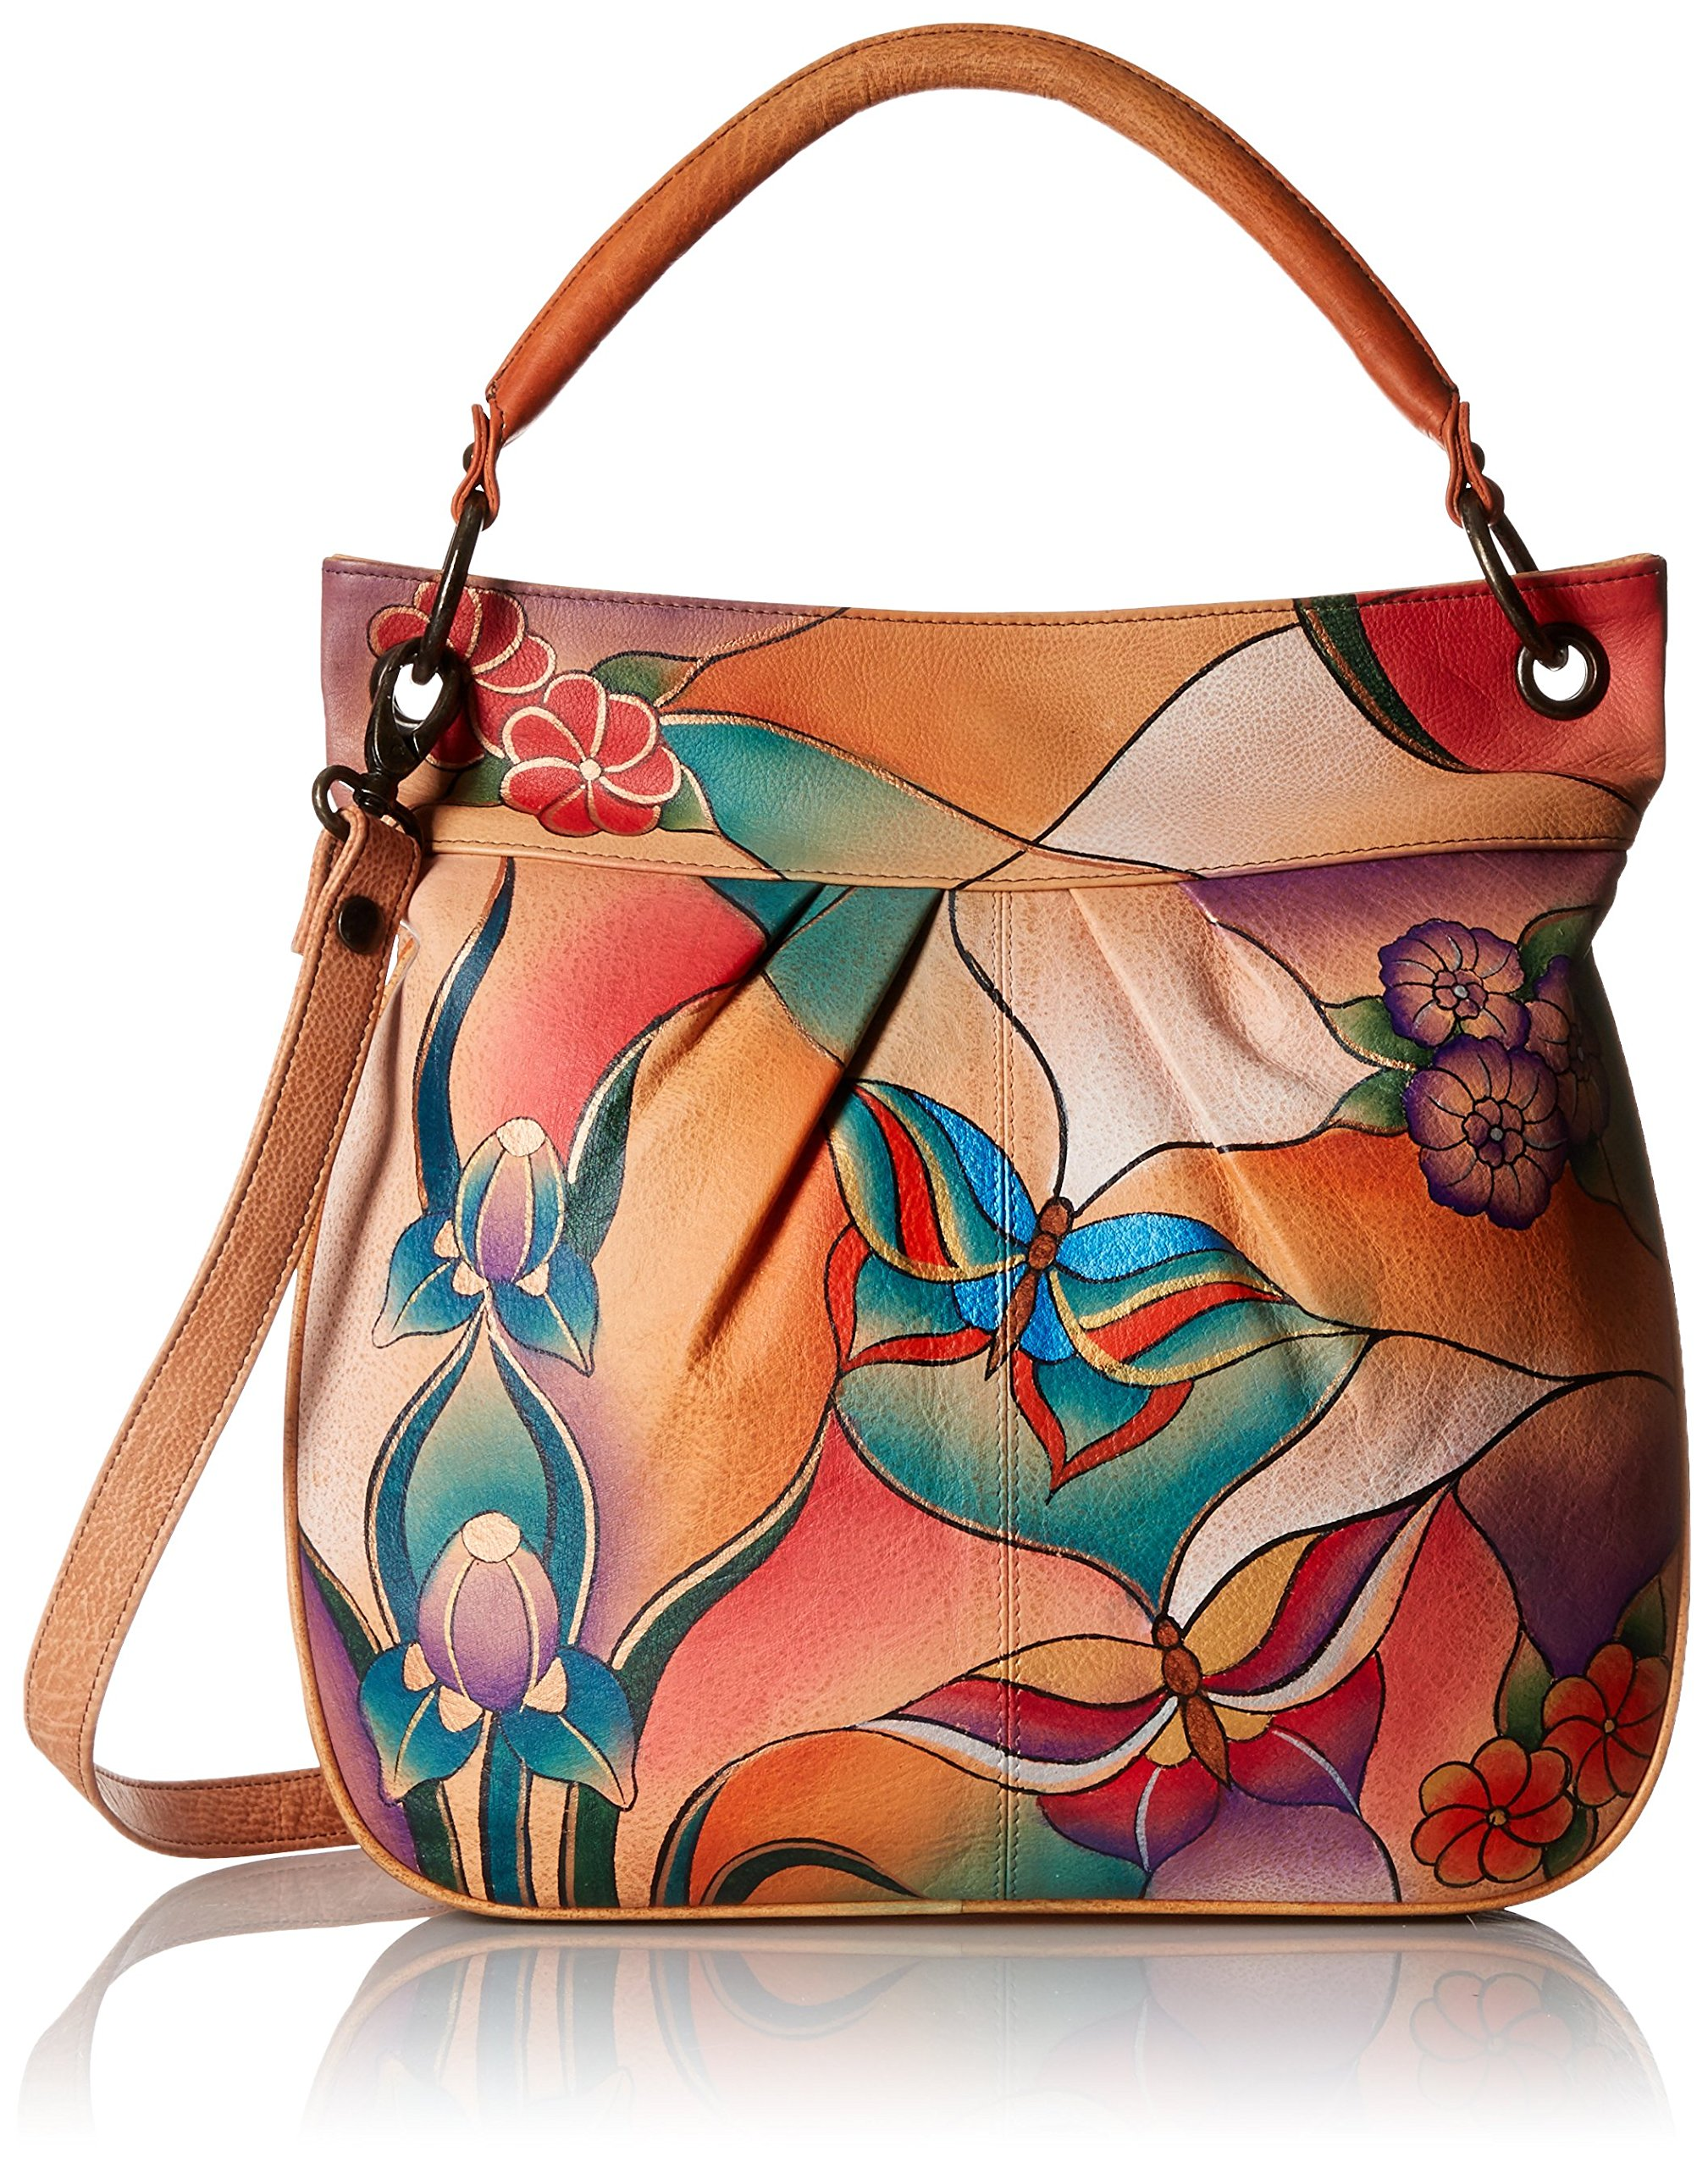 Anuschka Handpainted Leather Large Convertible Tote, Butterfly Glass Painting, One Size by Anna by Anuschka